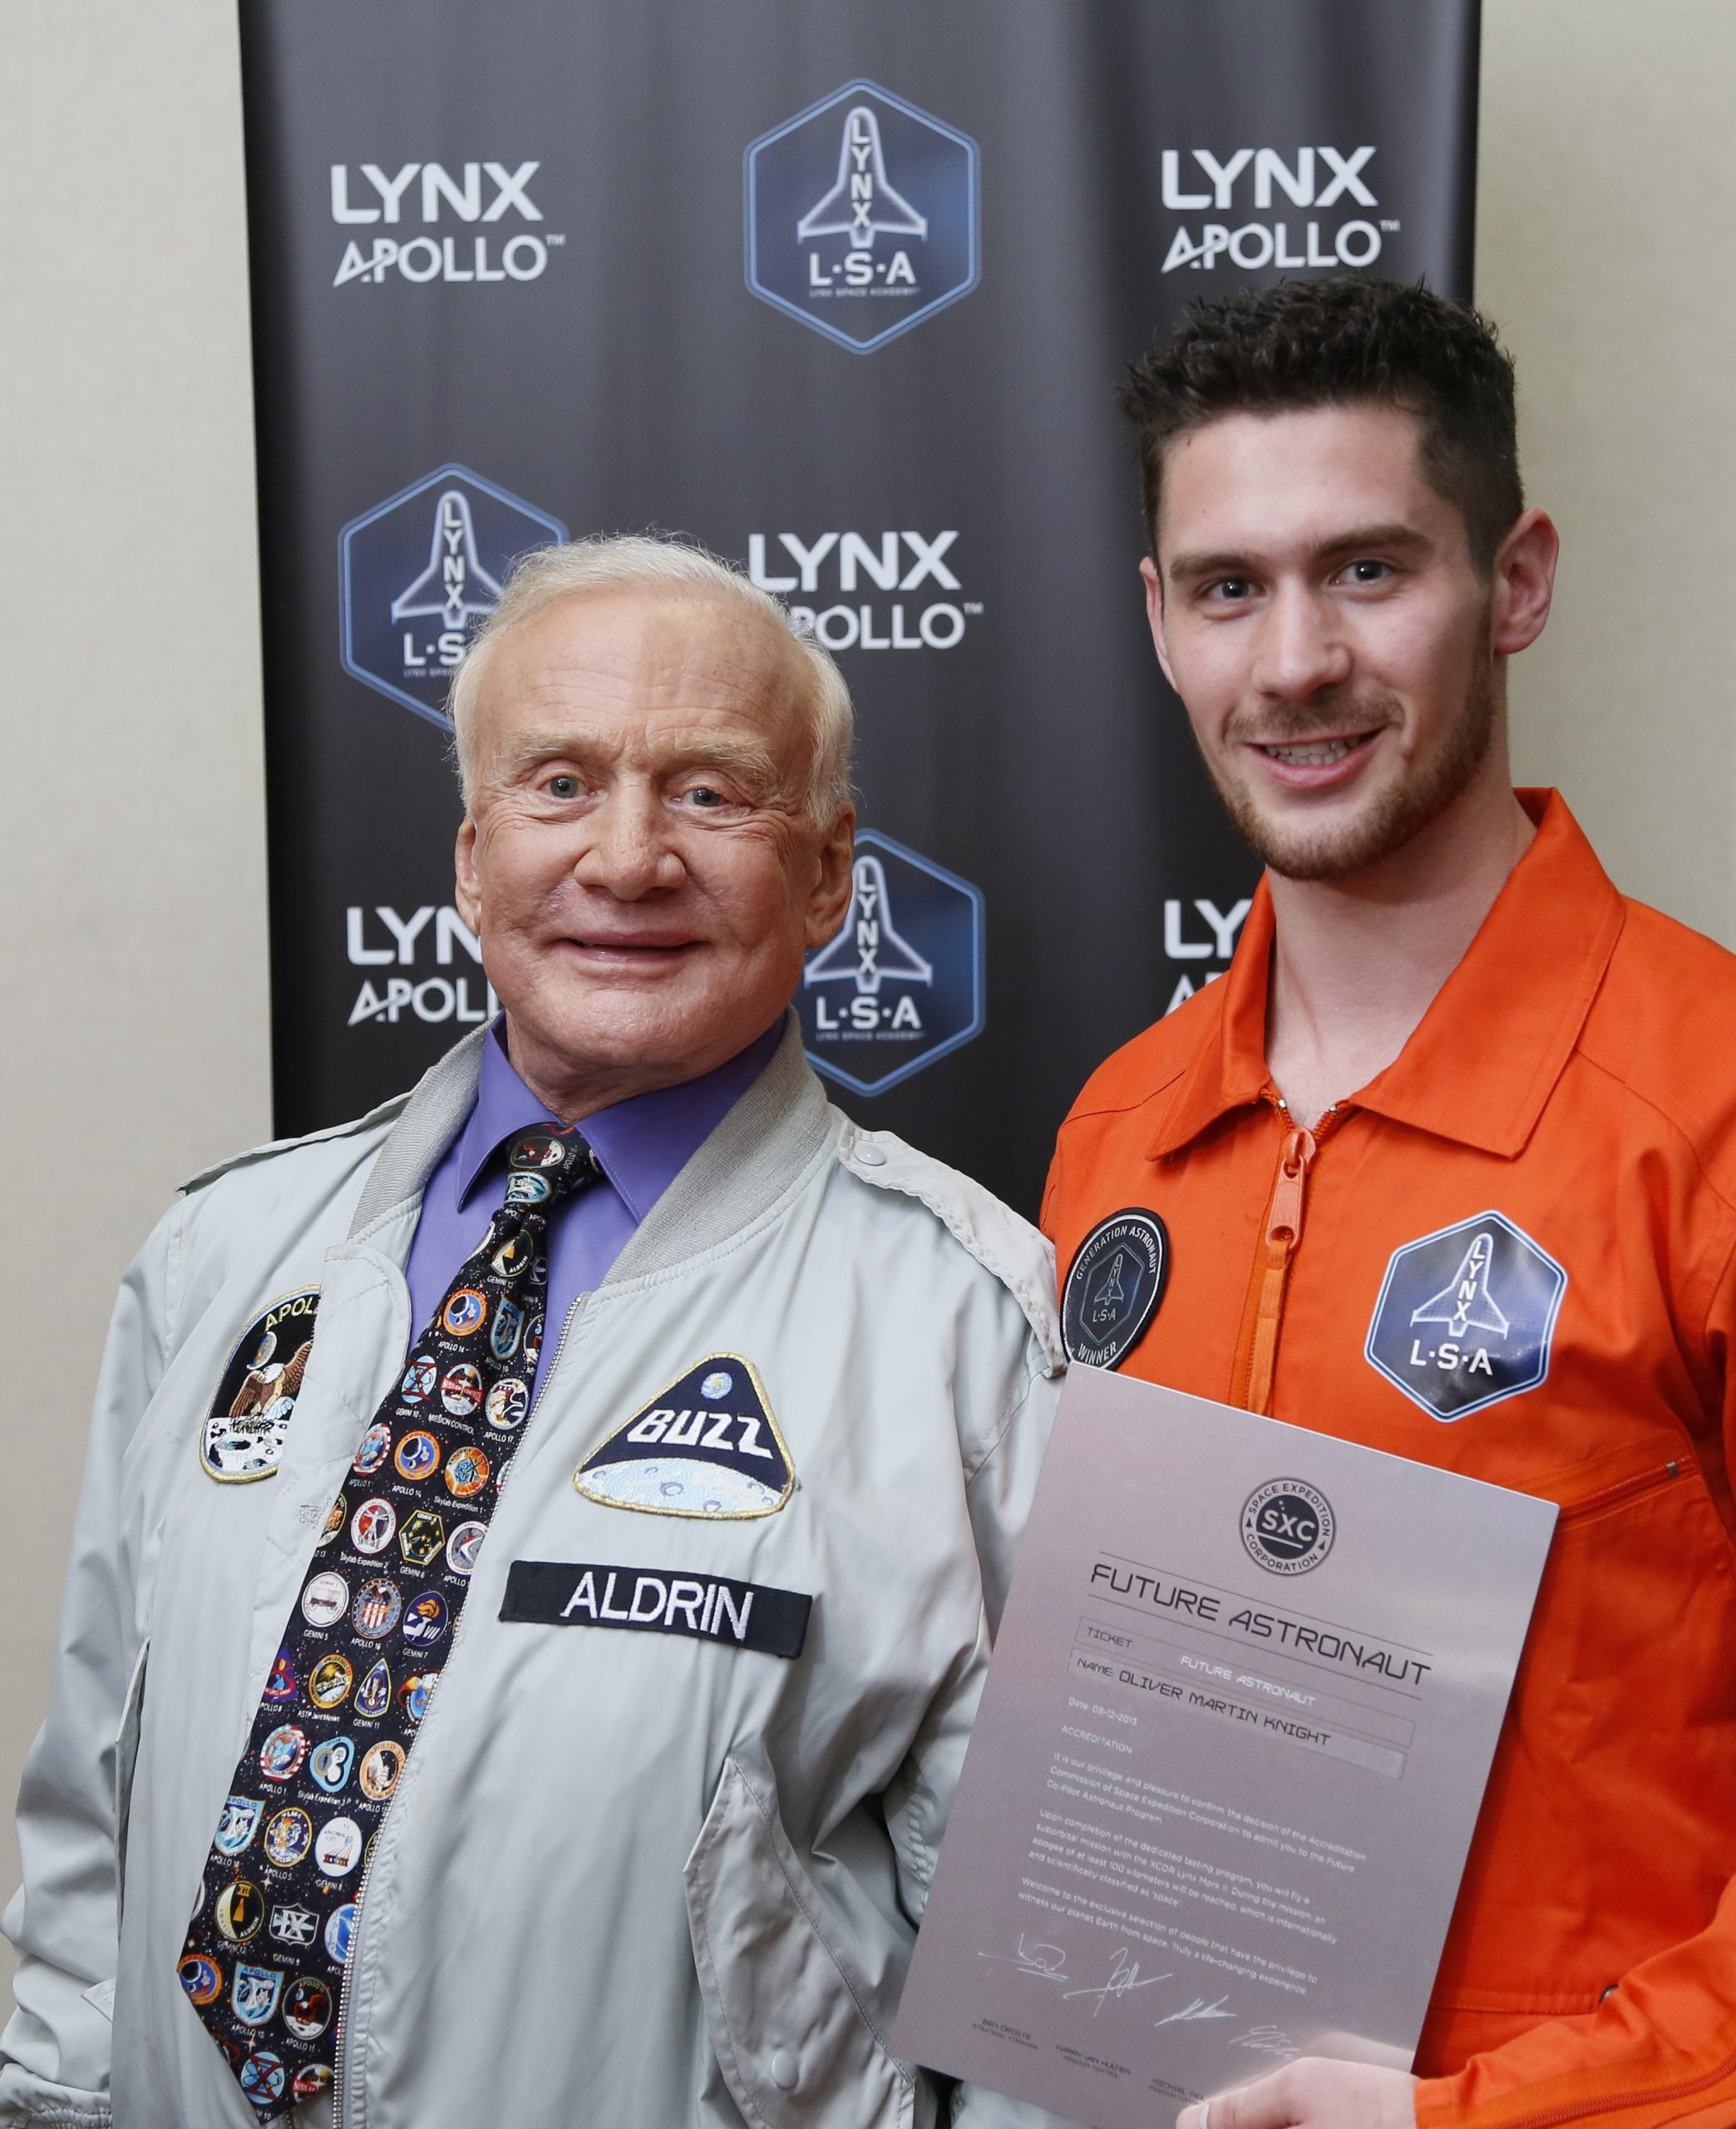 spaceman - with Buzz Aldrin